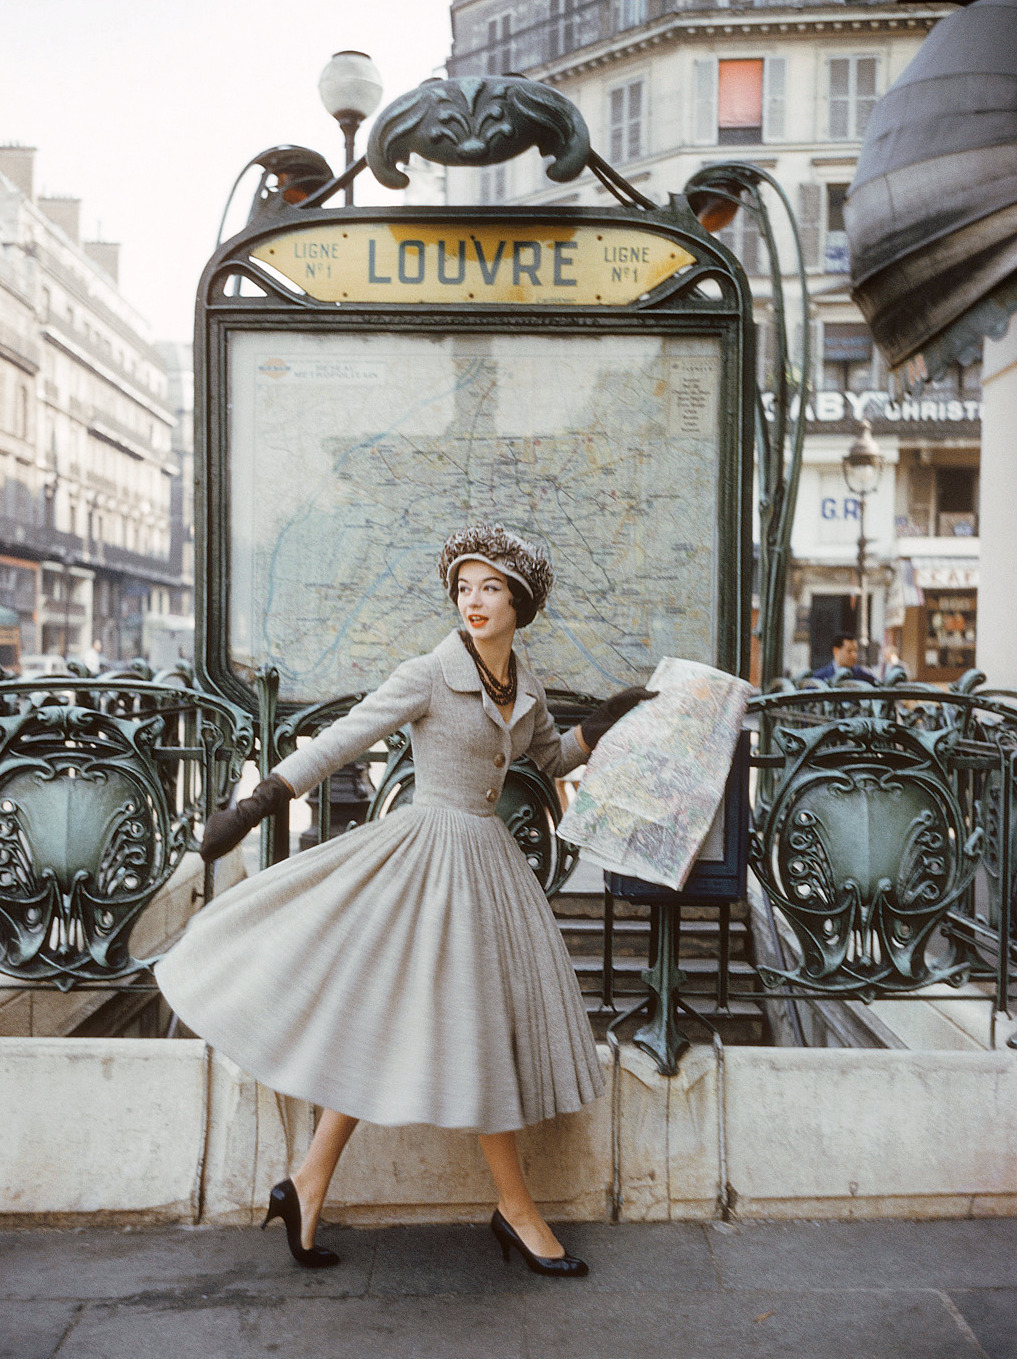 Model wearing an afternoon dress by Christian Dior in a photo by Mark Shaw, Paris, 1957